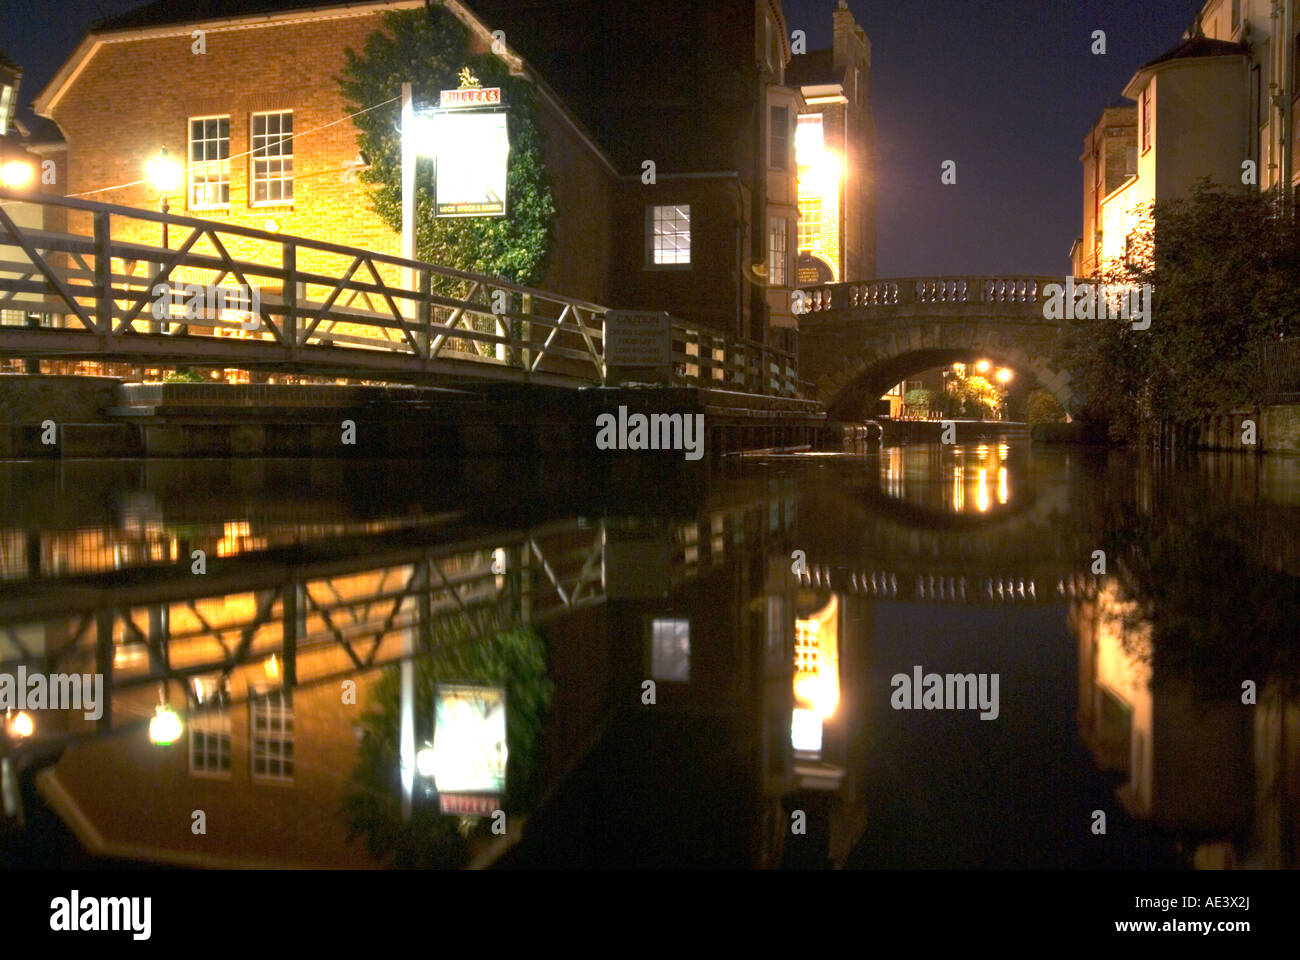 PICTURE CREDIT Doug Blane Pub and bridge at night in Newbury on the kennet and avon canal - Stock Image